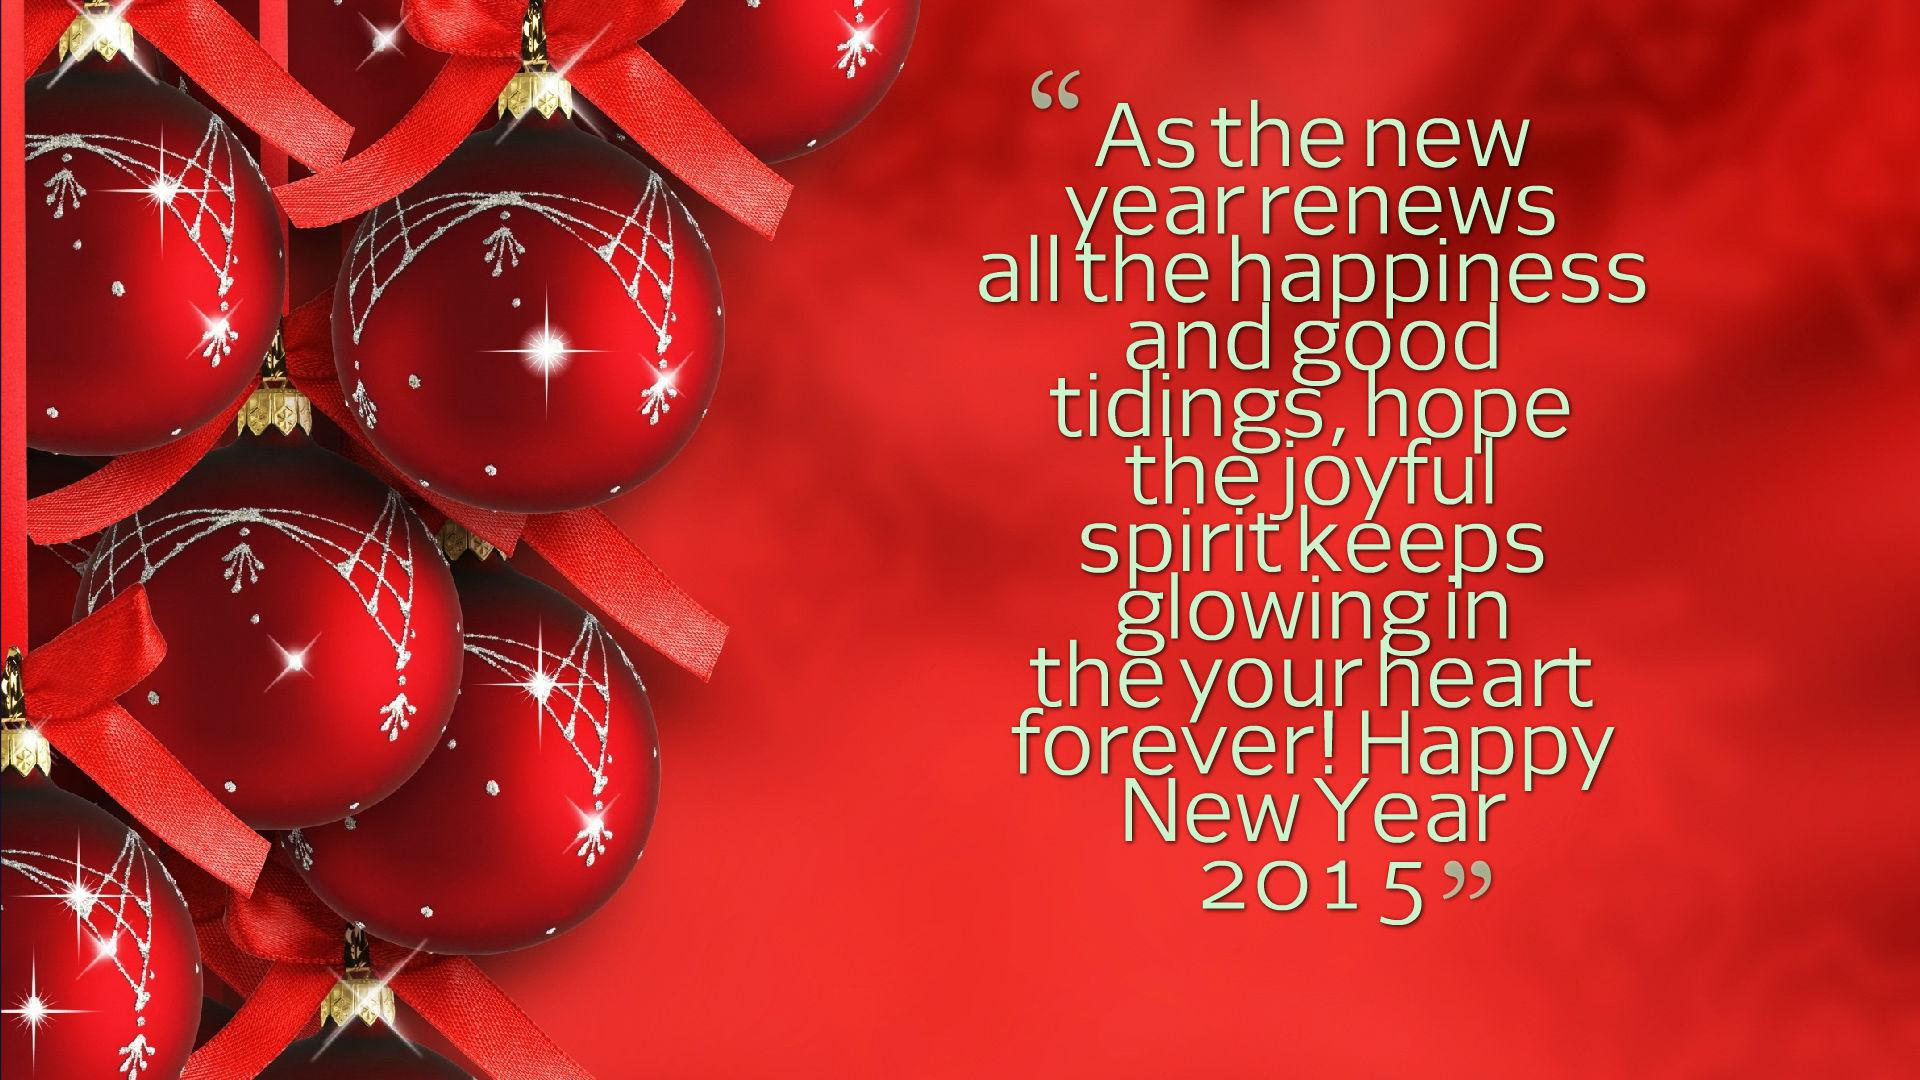 1920x1080px new year 2015 greetings wallpaper wallpapersafari happy new year greetings cards 4jpg 1920x1080 m4hsunfo